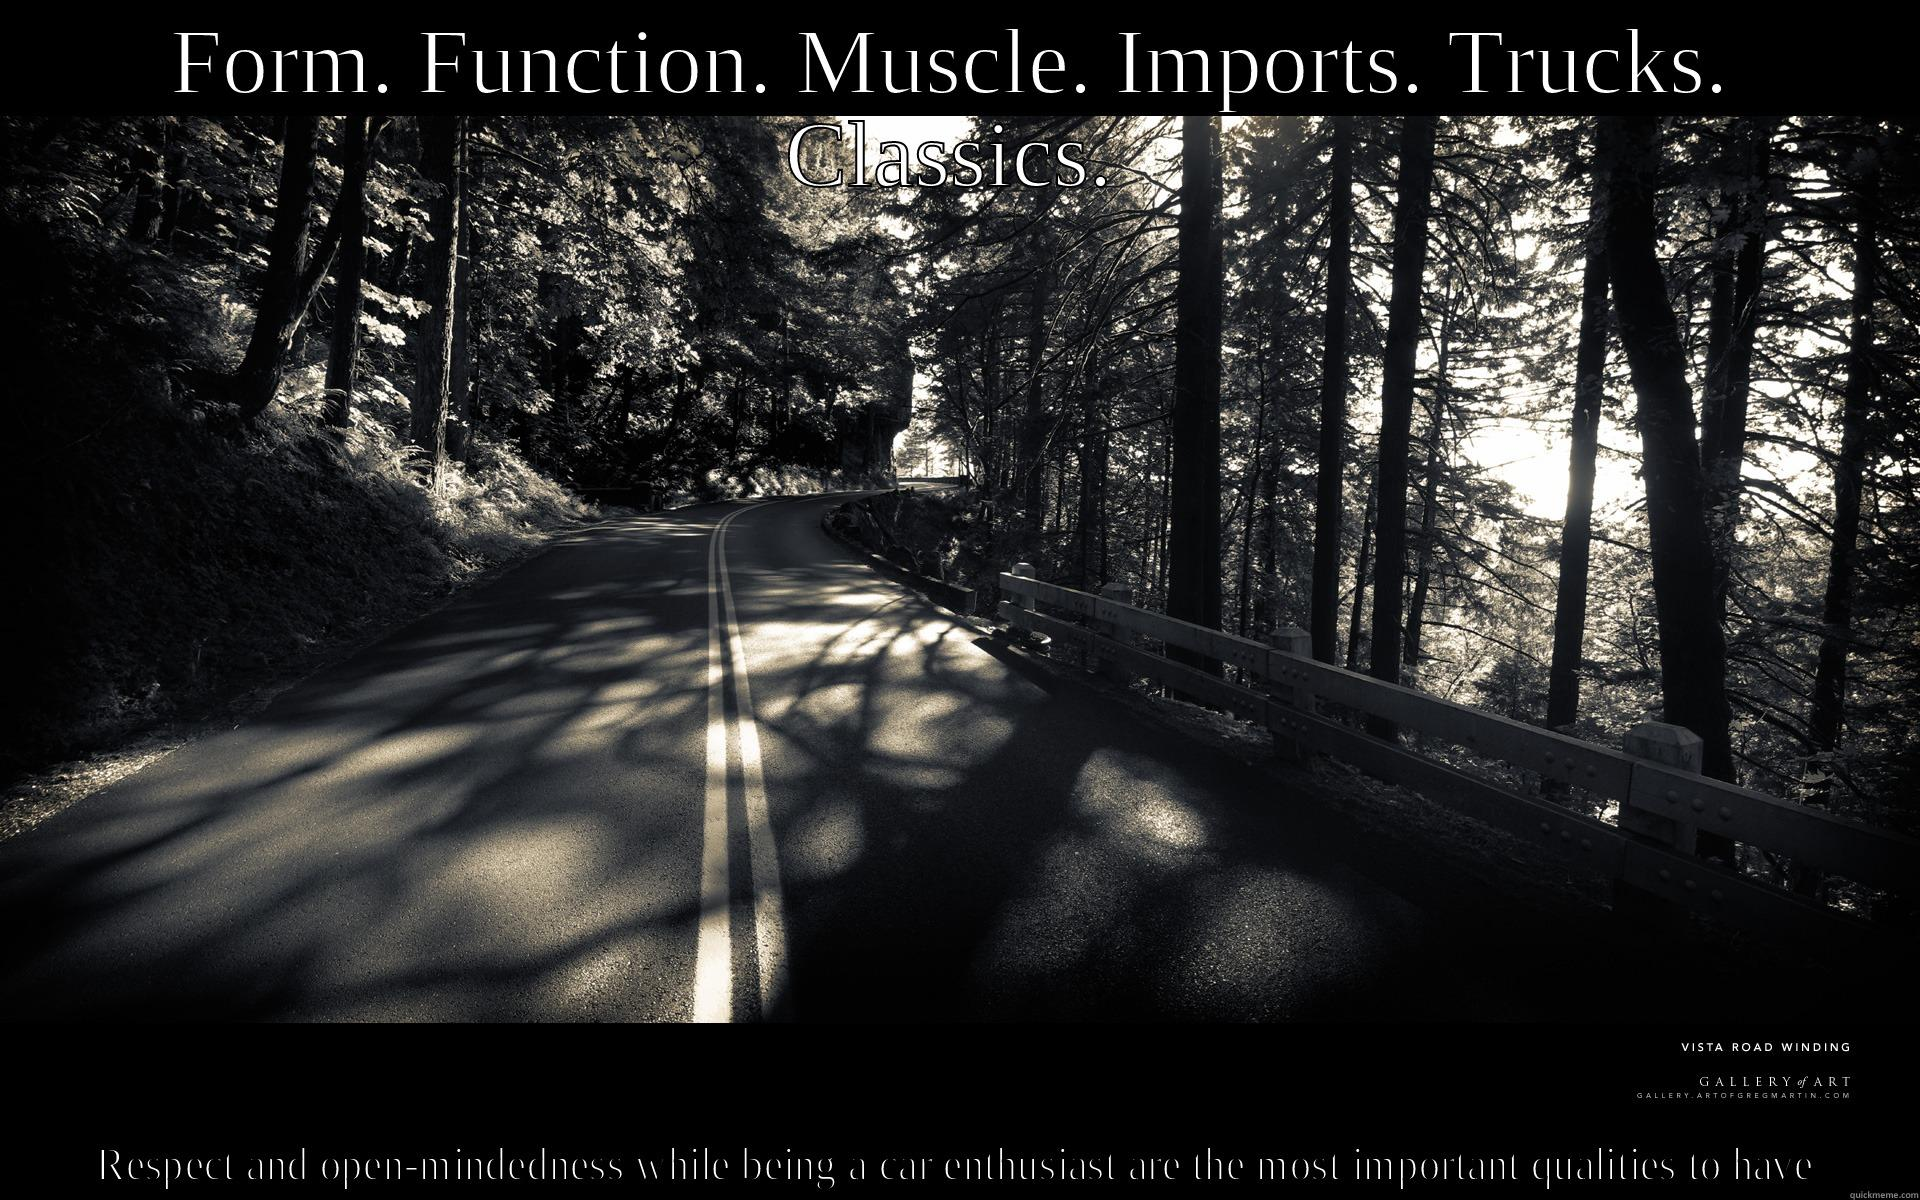 FORM. FUNCTION. MUSCLE. IMPORTS. TRUCKS. CLASSICS. RESPECT AND OPEN-MINDEDNESS WHILE BEING A CAR ENTHUSIAST ARE THE MOST IMPORTANT QUALITIES TO HAVE Misc